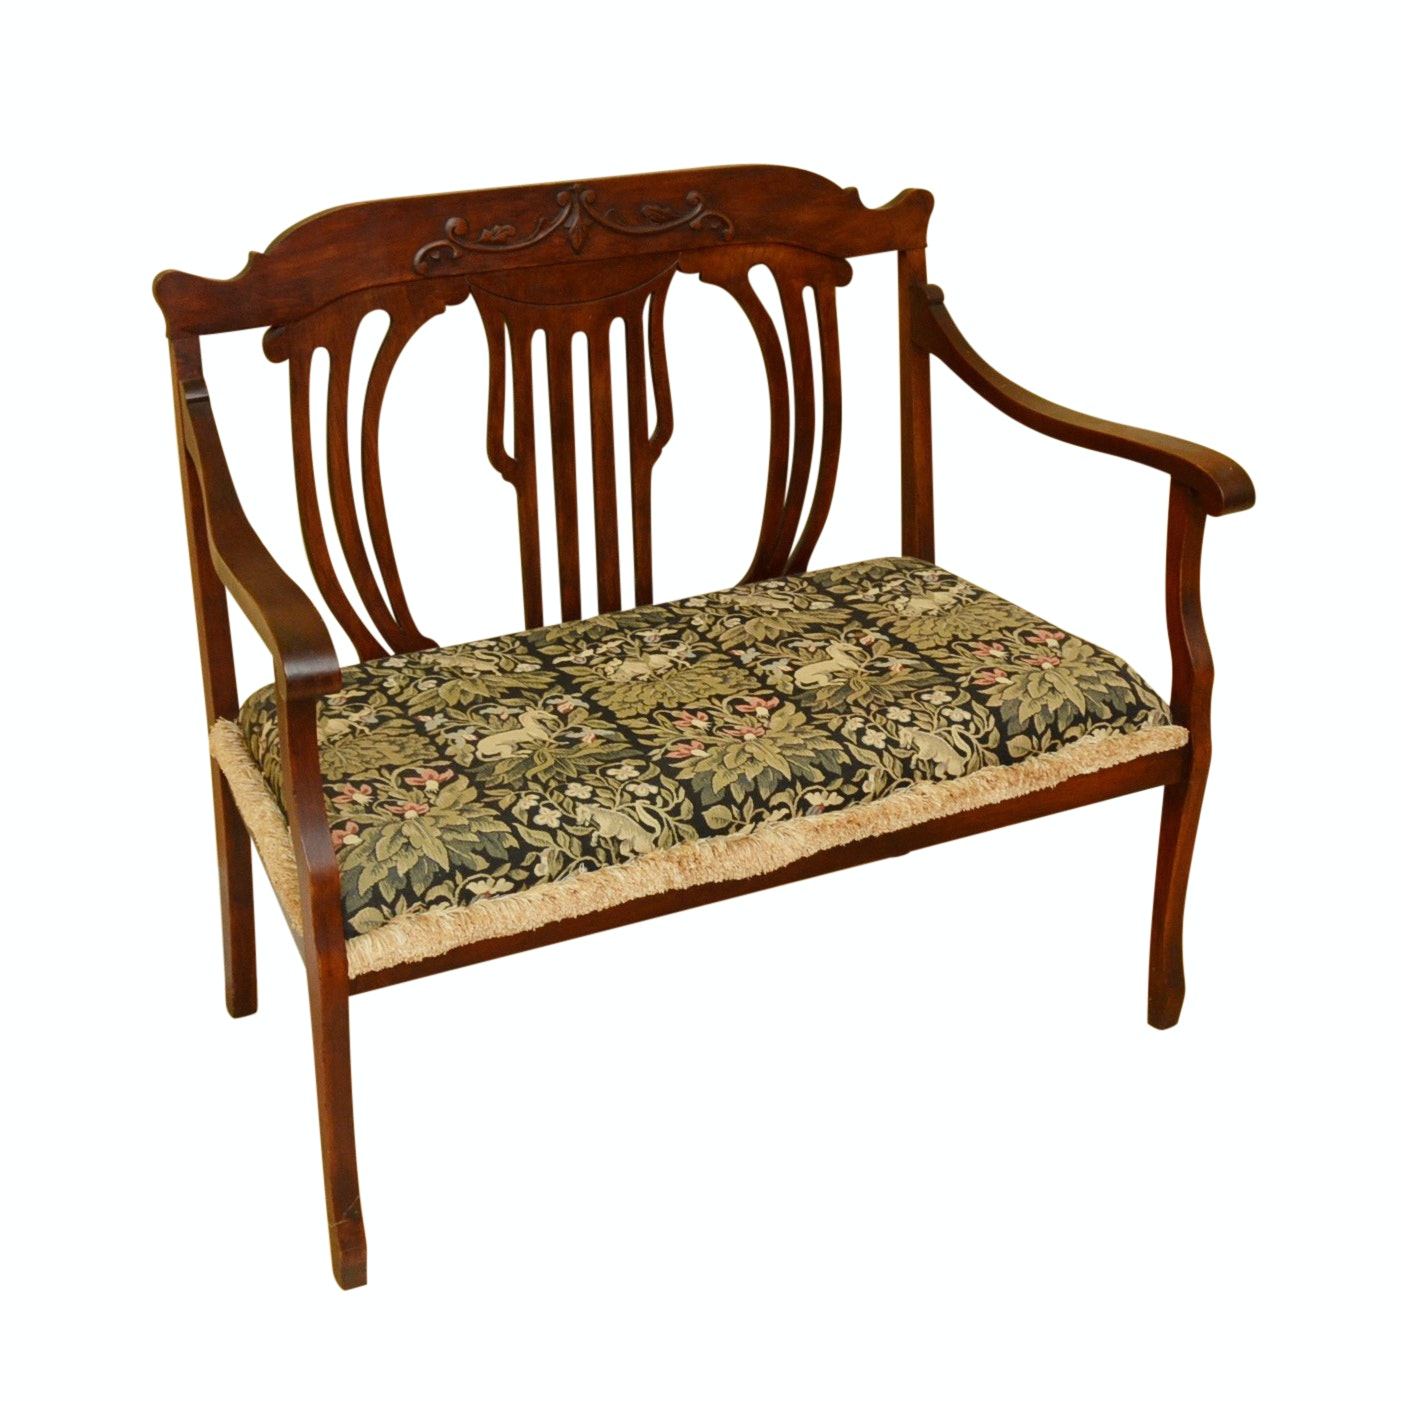 Antique Mahogany Settee with Tapestry Cushion